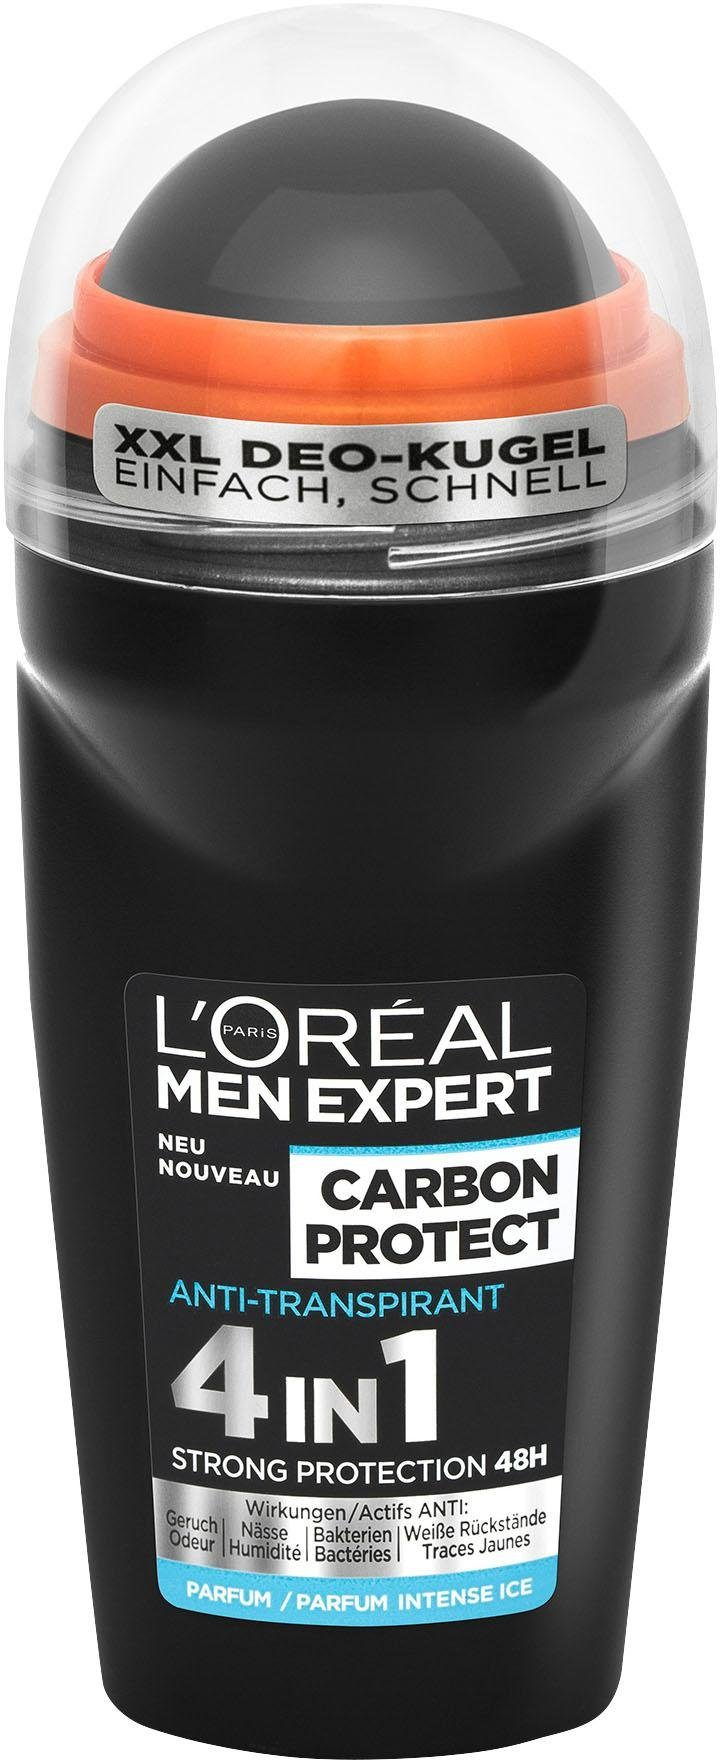 L'oréal Paris Men Expert, »Carbon Protect«, Deo Roll-On